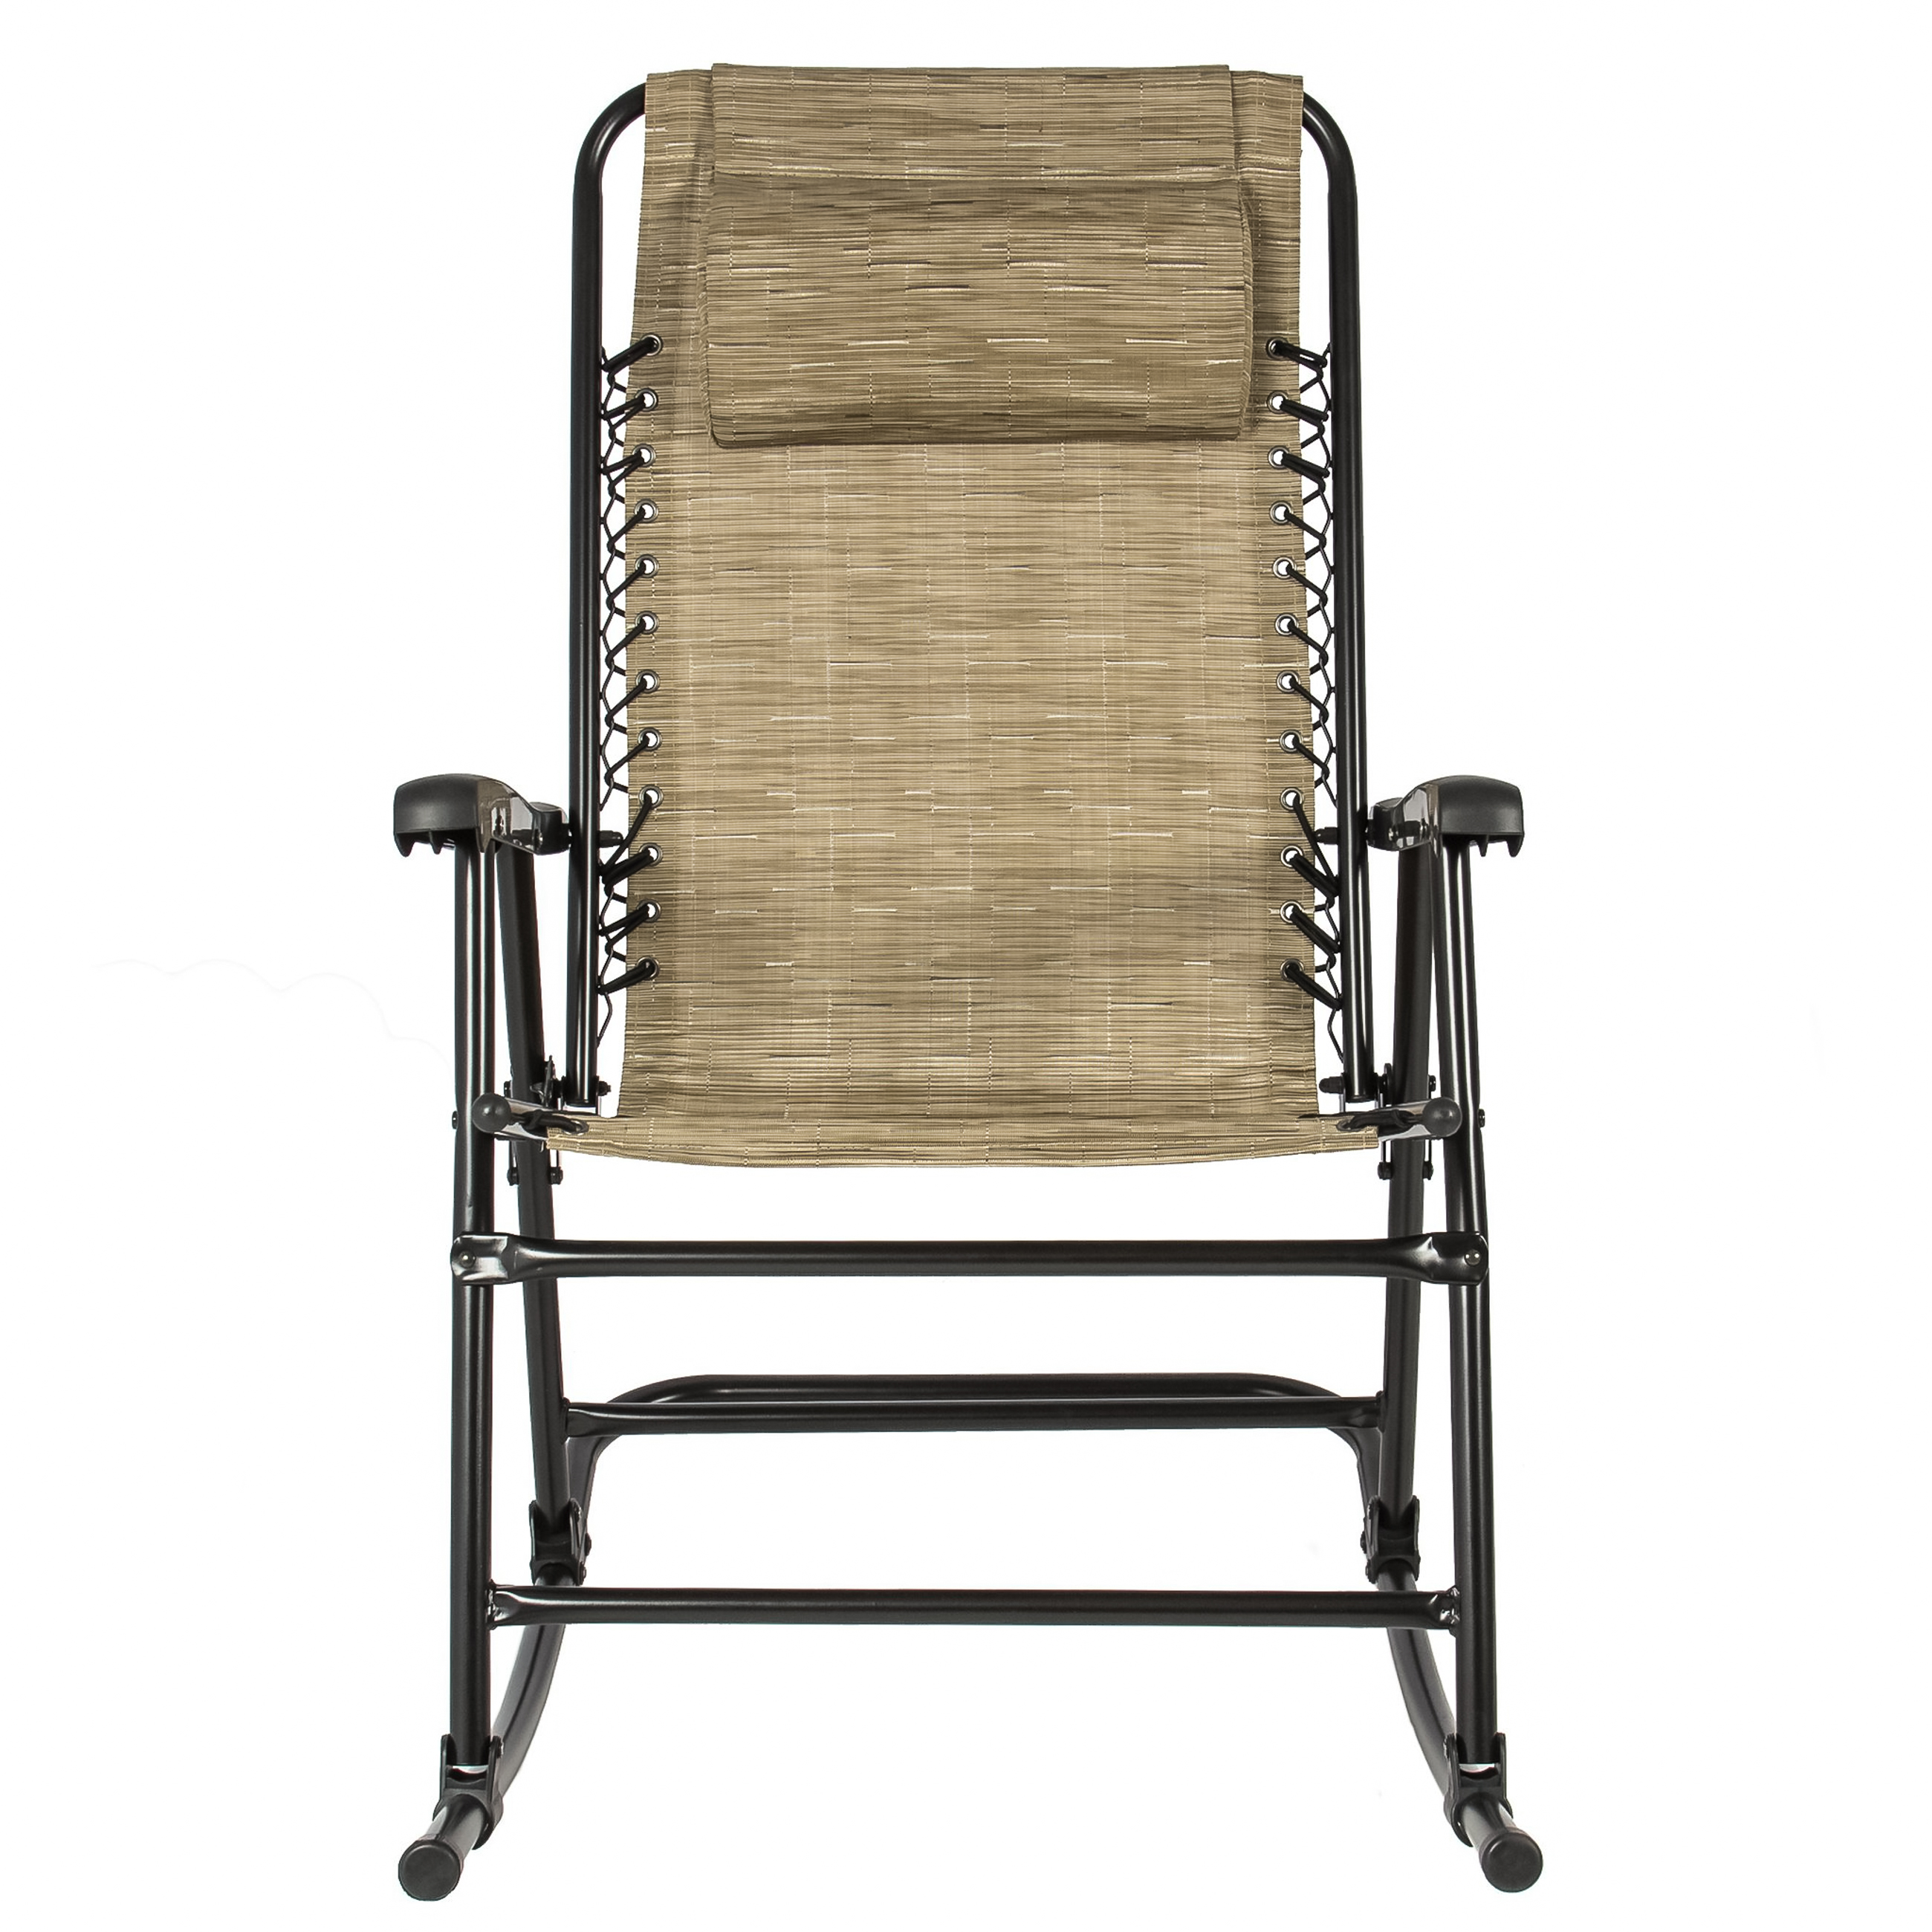 Best Choice Products Foldable Zero Gravity Rocking Patio Recliner ...